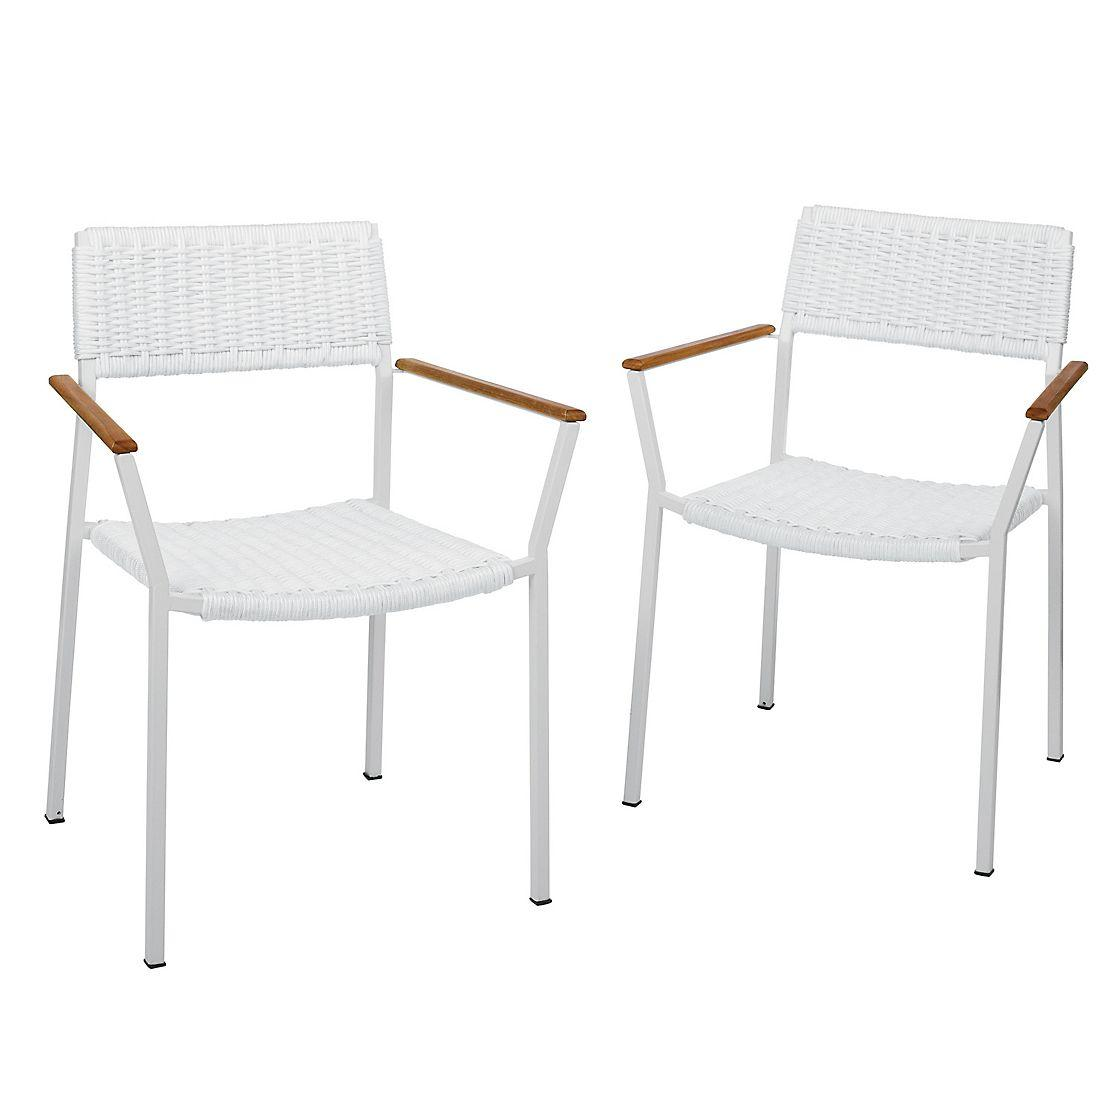 stackable outdoor chairs revolving chair for sale in lahore rainbow wood set the company store